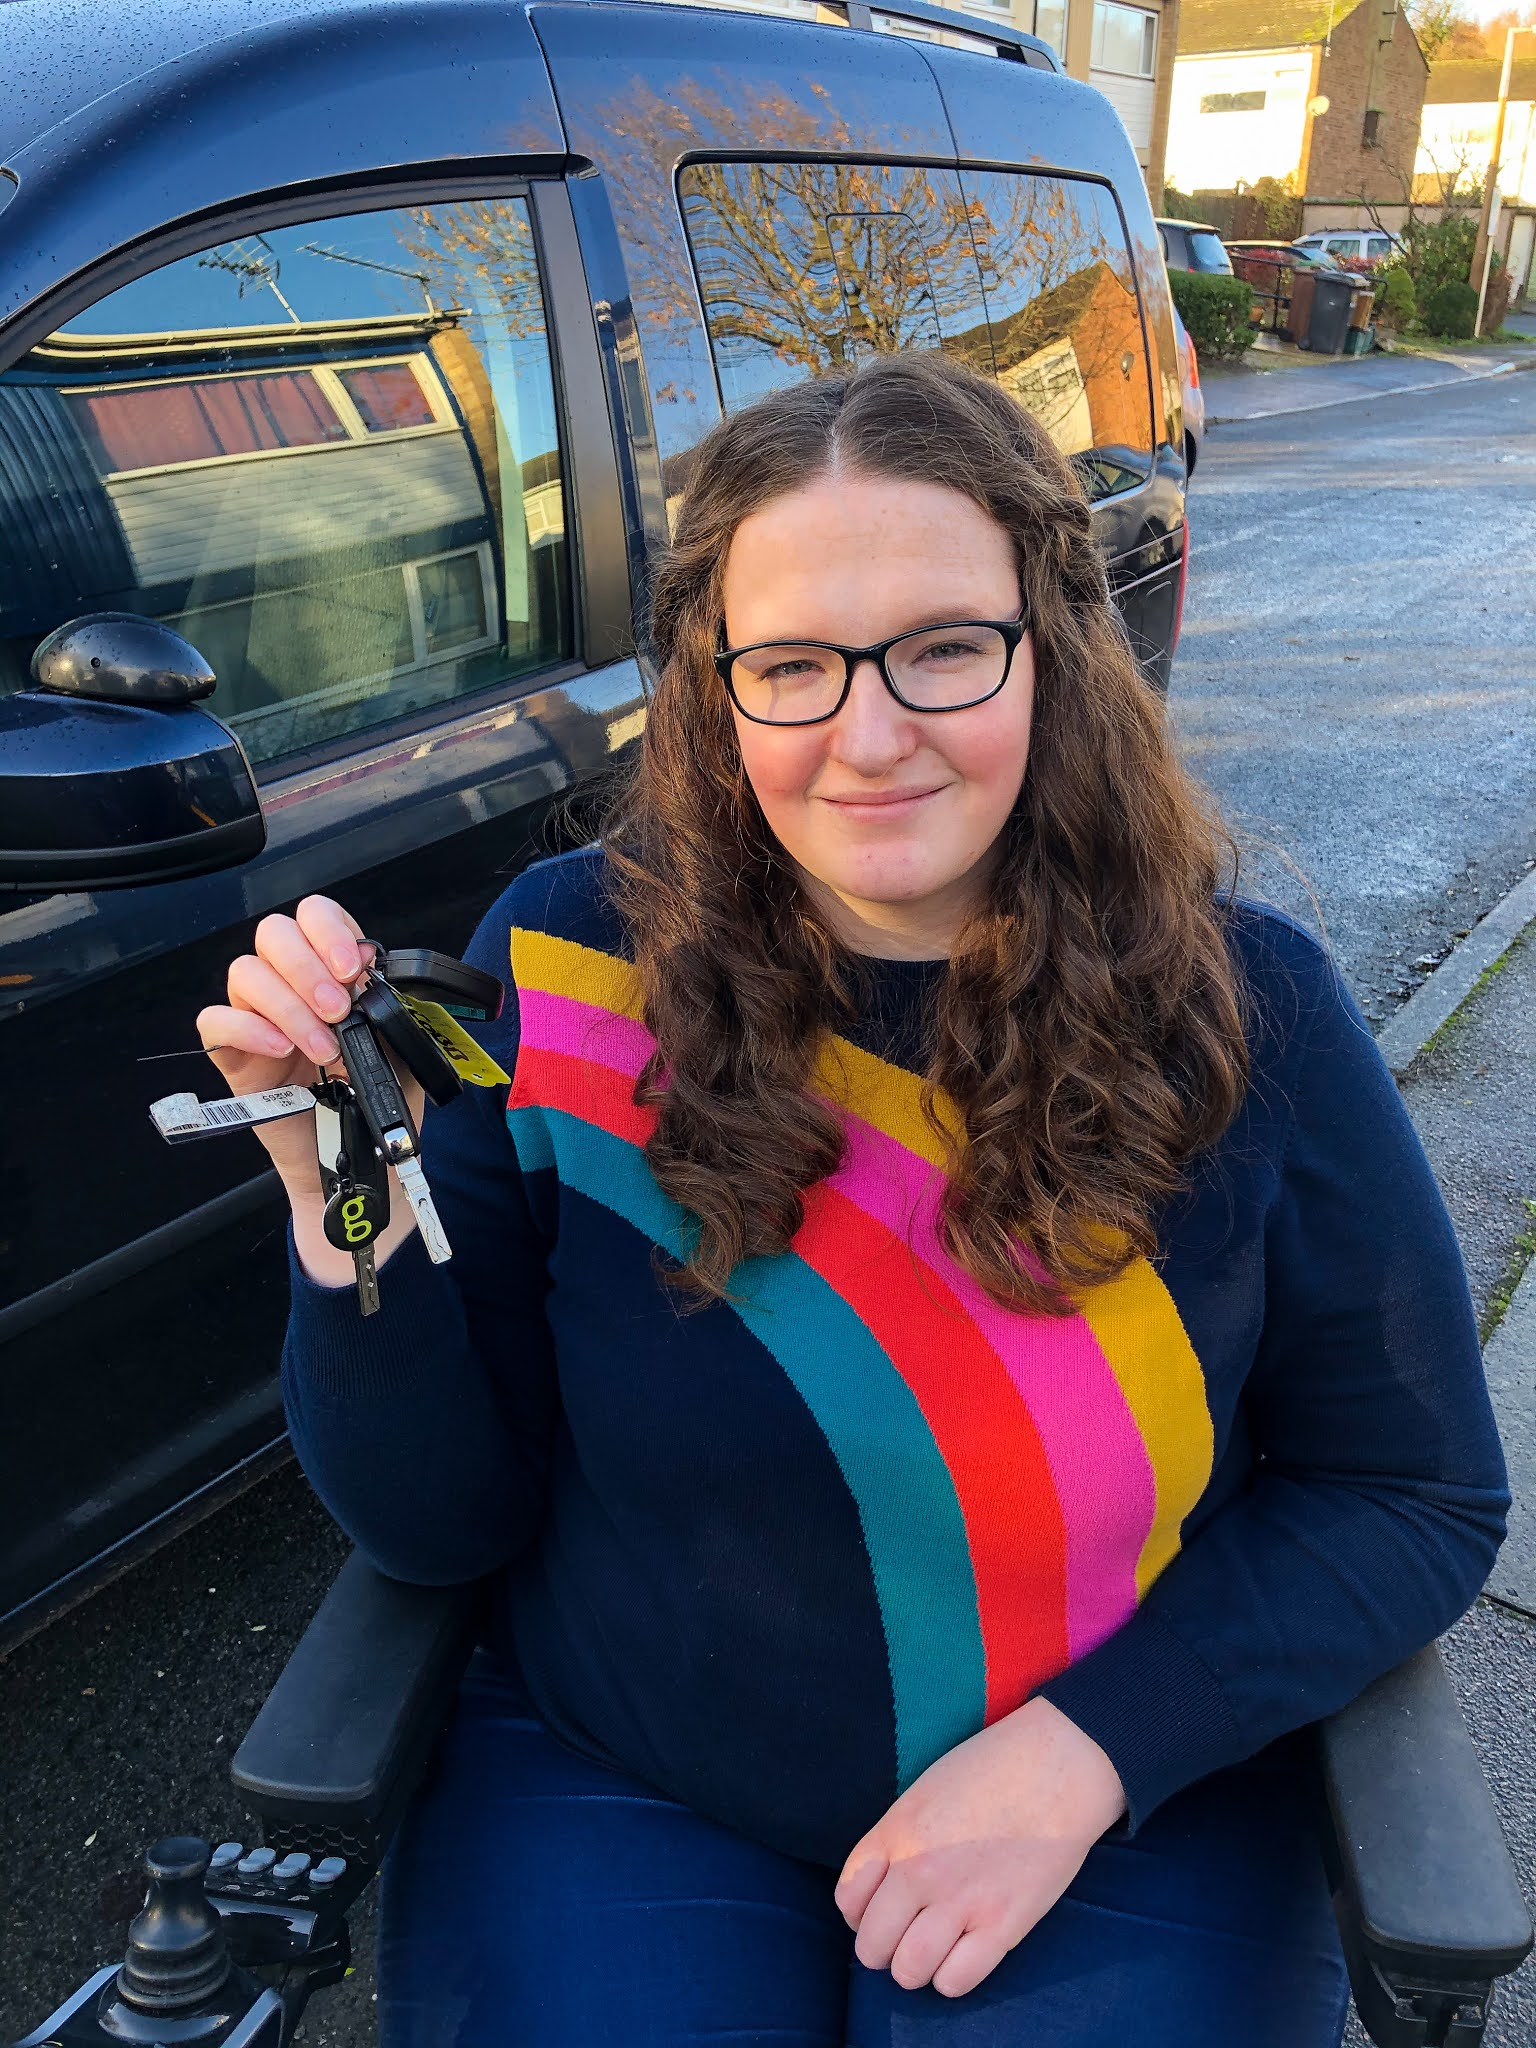 Shona, a young white woman with long curly auburn hair, is sitting in her powerchair in front of her adapted car. She is wearing glasses and a navy jumper with a rainbow on. She is holding up her car keys and smiling.